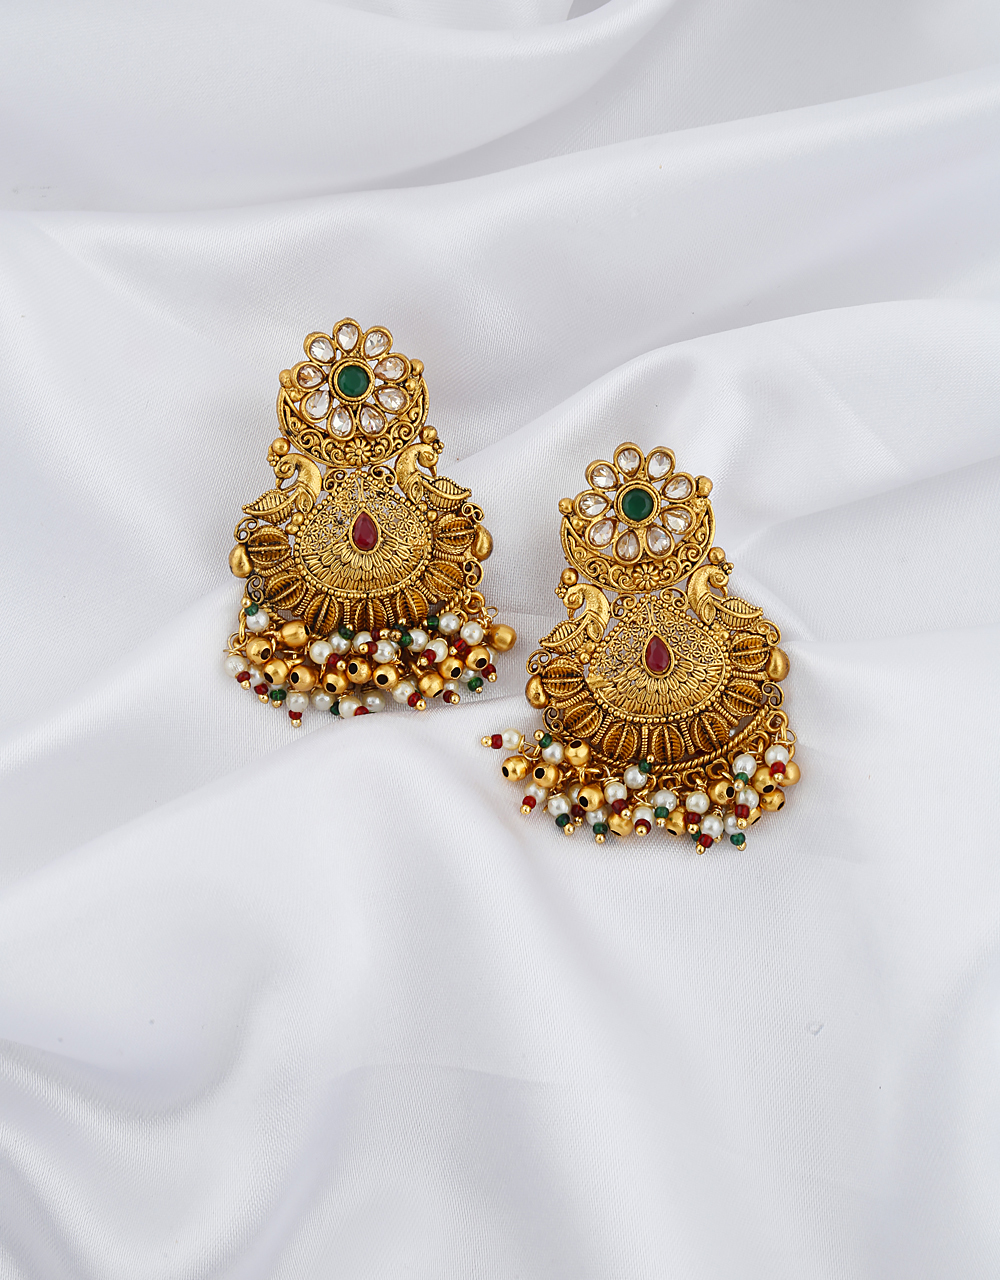 Golden Finish Peacock Design Studded With Lots Of Pearl Beads Droplet Earrings Pair